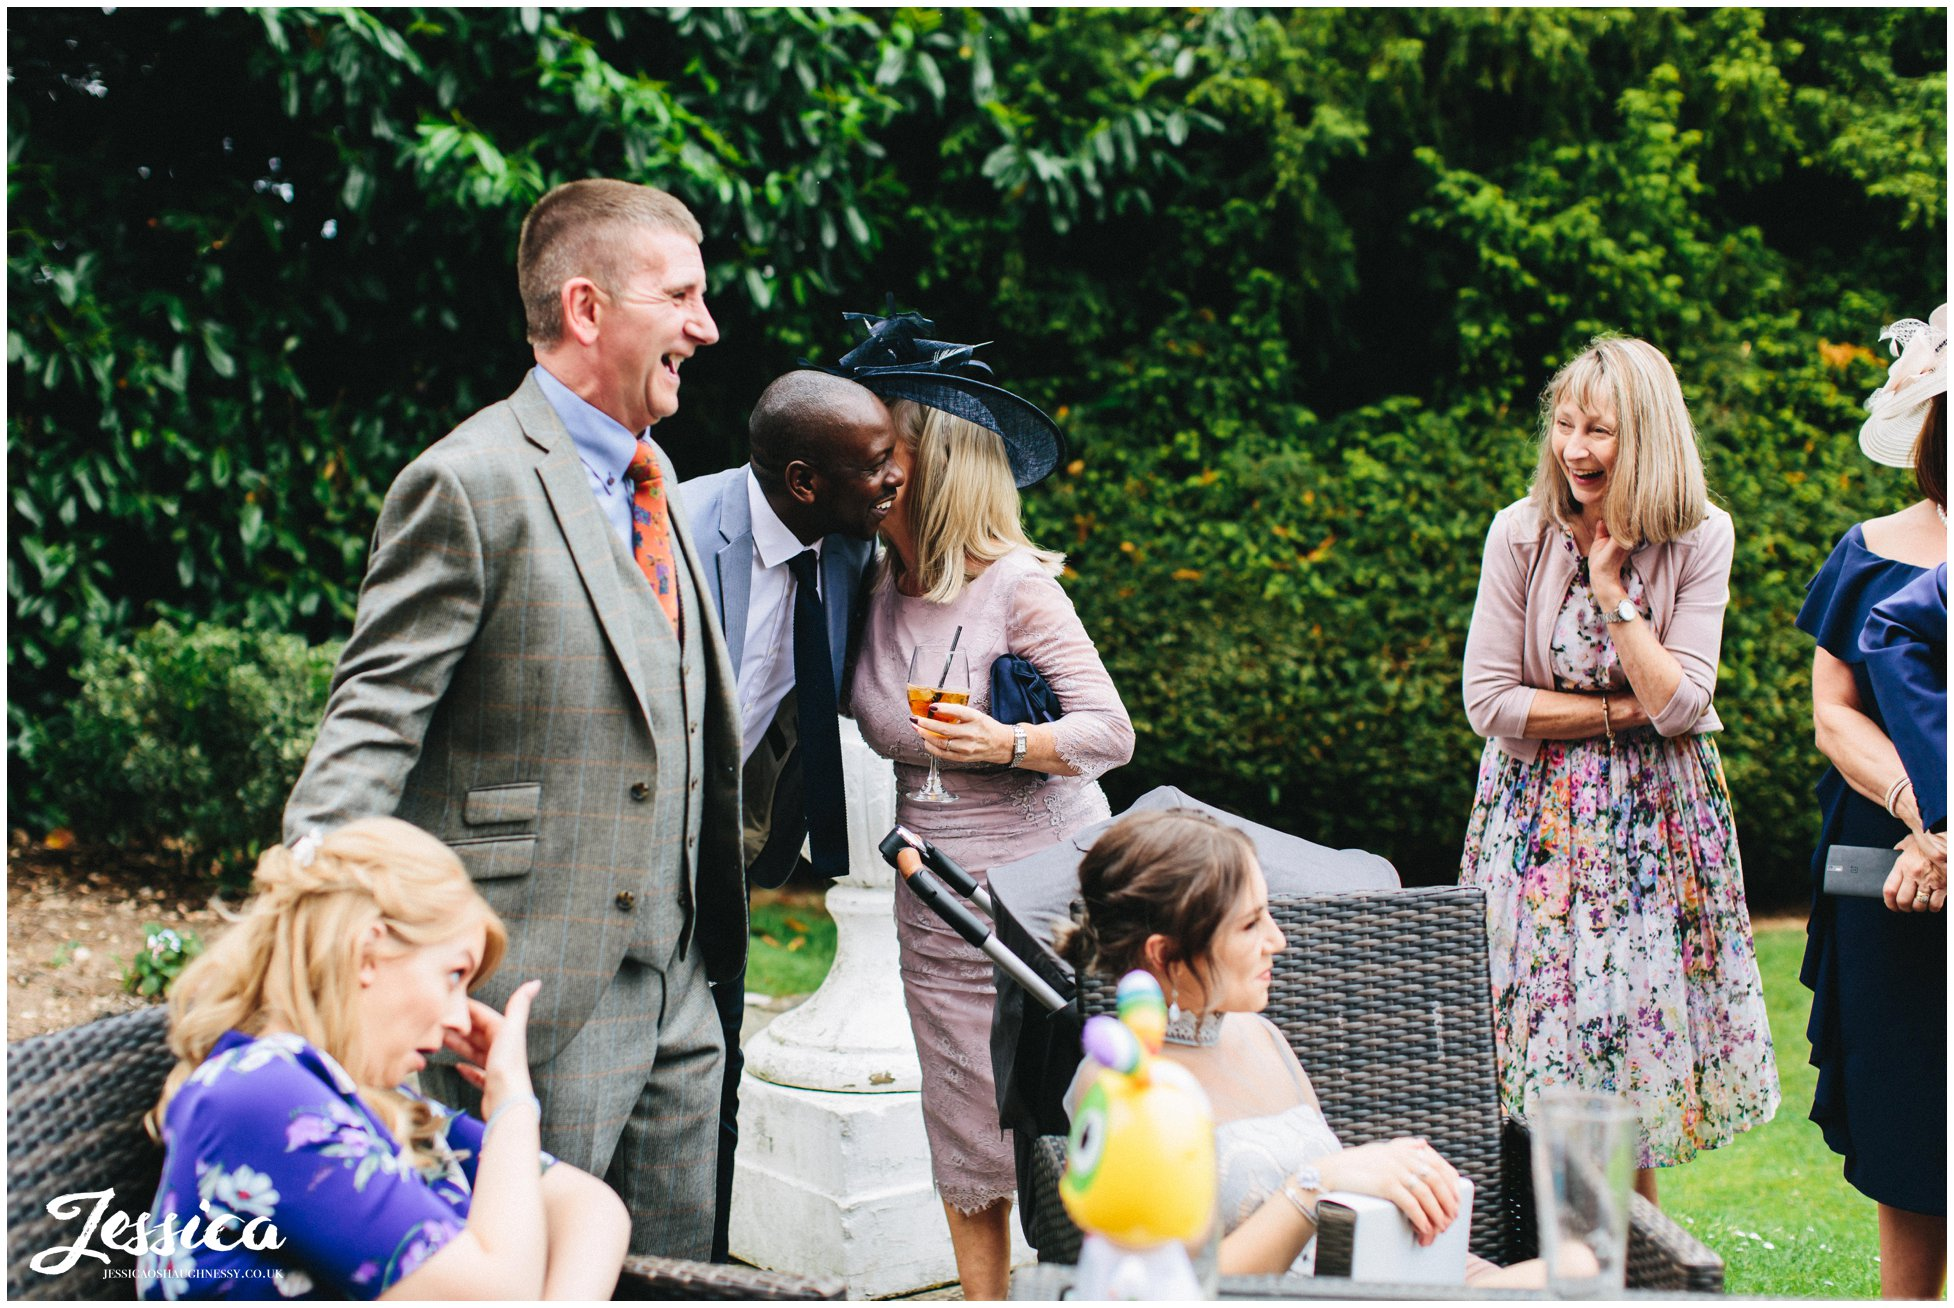 guests enjoy the nice weather at mottram hall wedding in cheshire